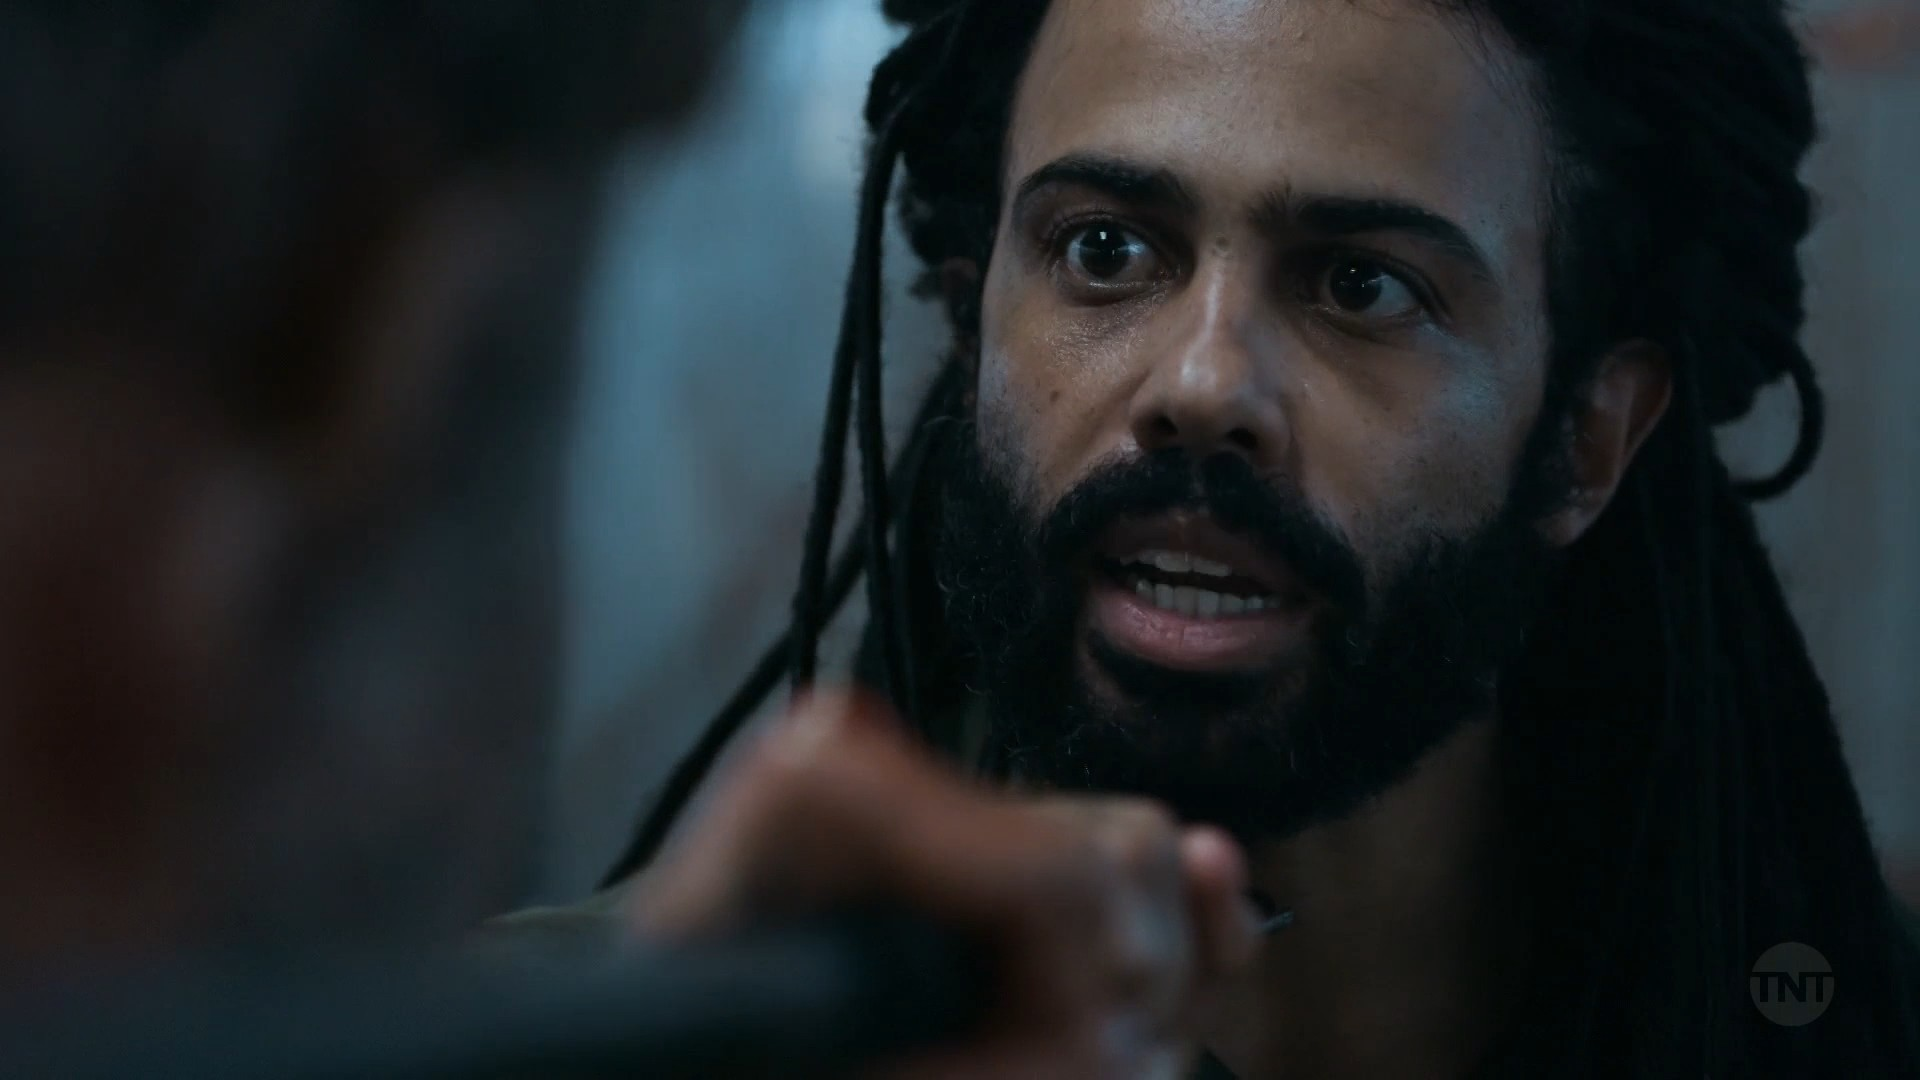 Snowpiercer series Daveed Diggs as Andre Layton